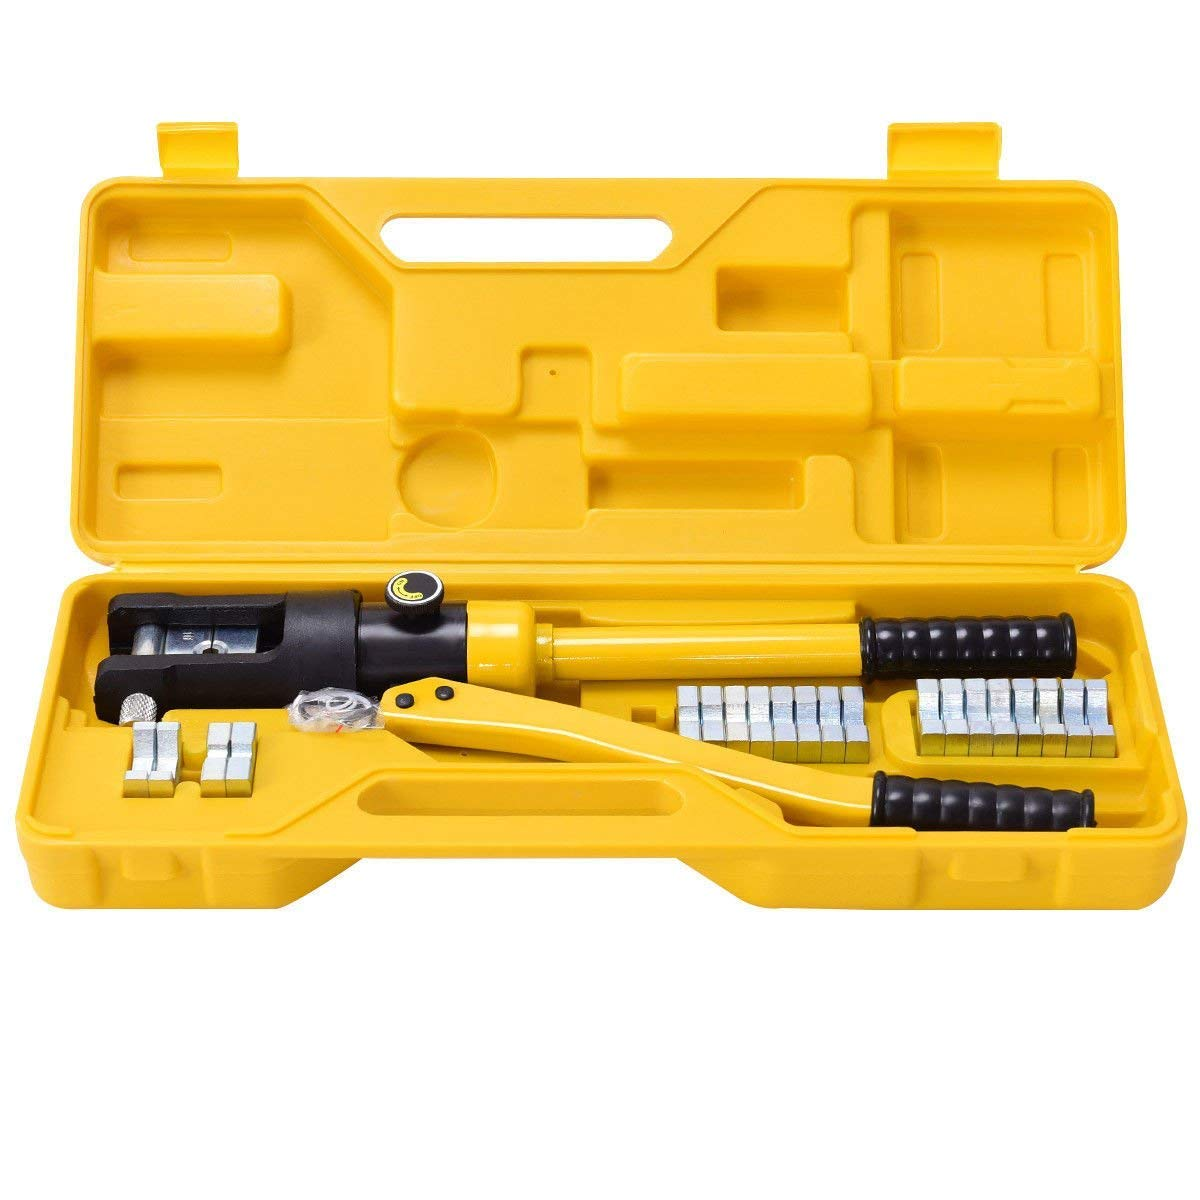 GOFLAME 16 Ton Hydraulic Wire Professional Hydraulic Battery Cable Lug Crimping Tool Set w/11 Dies